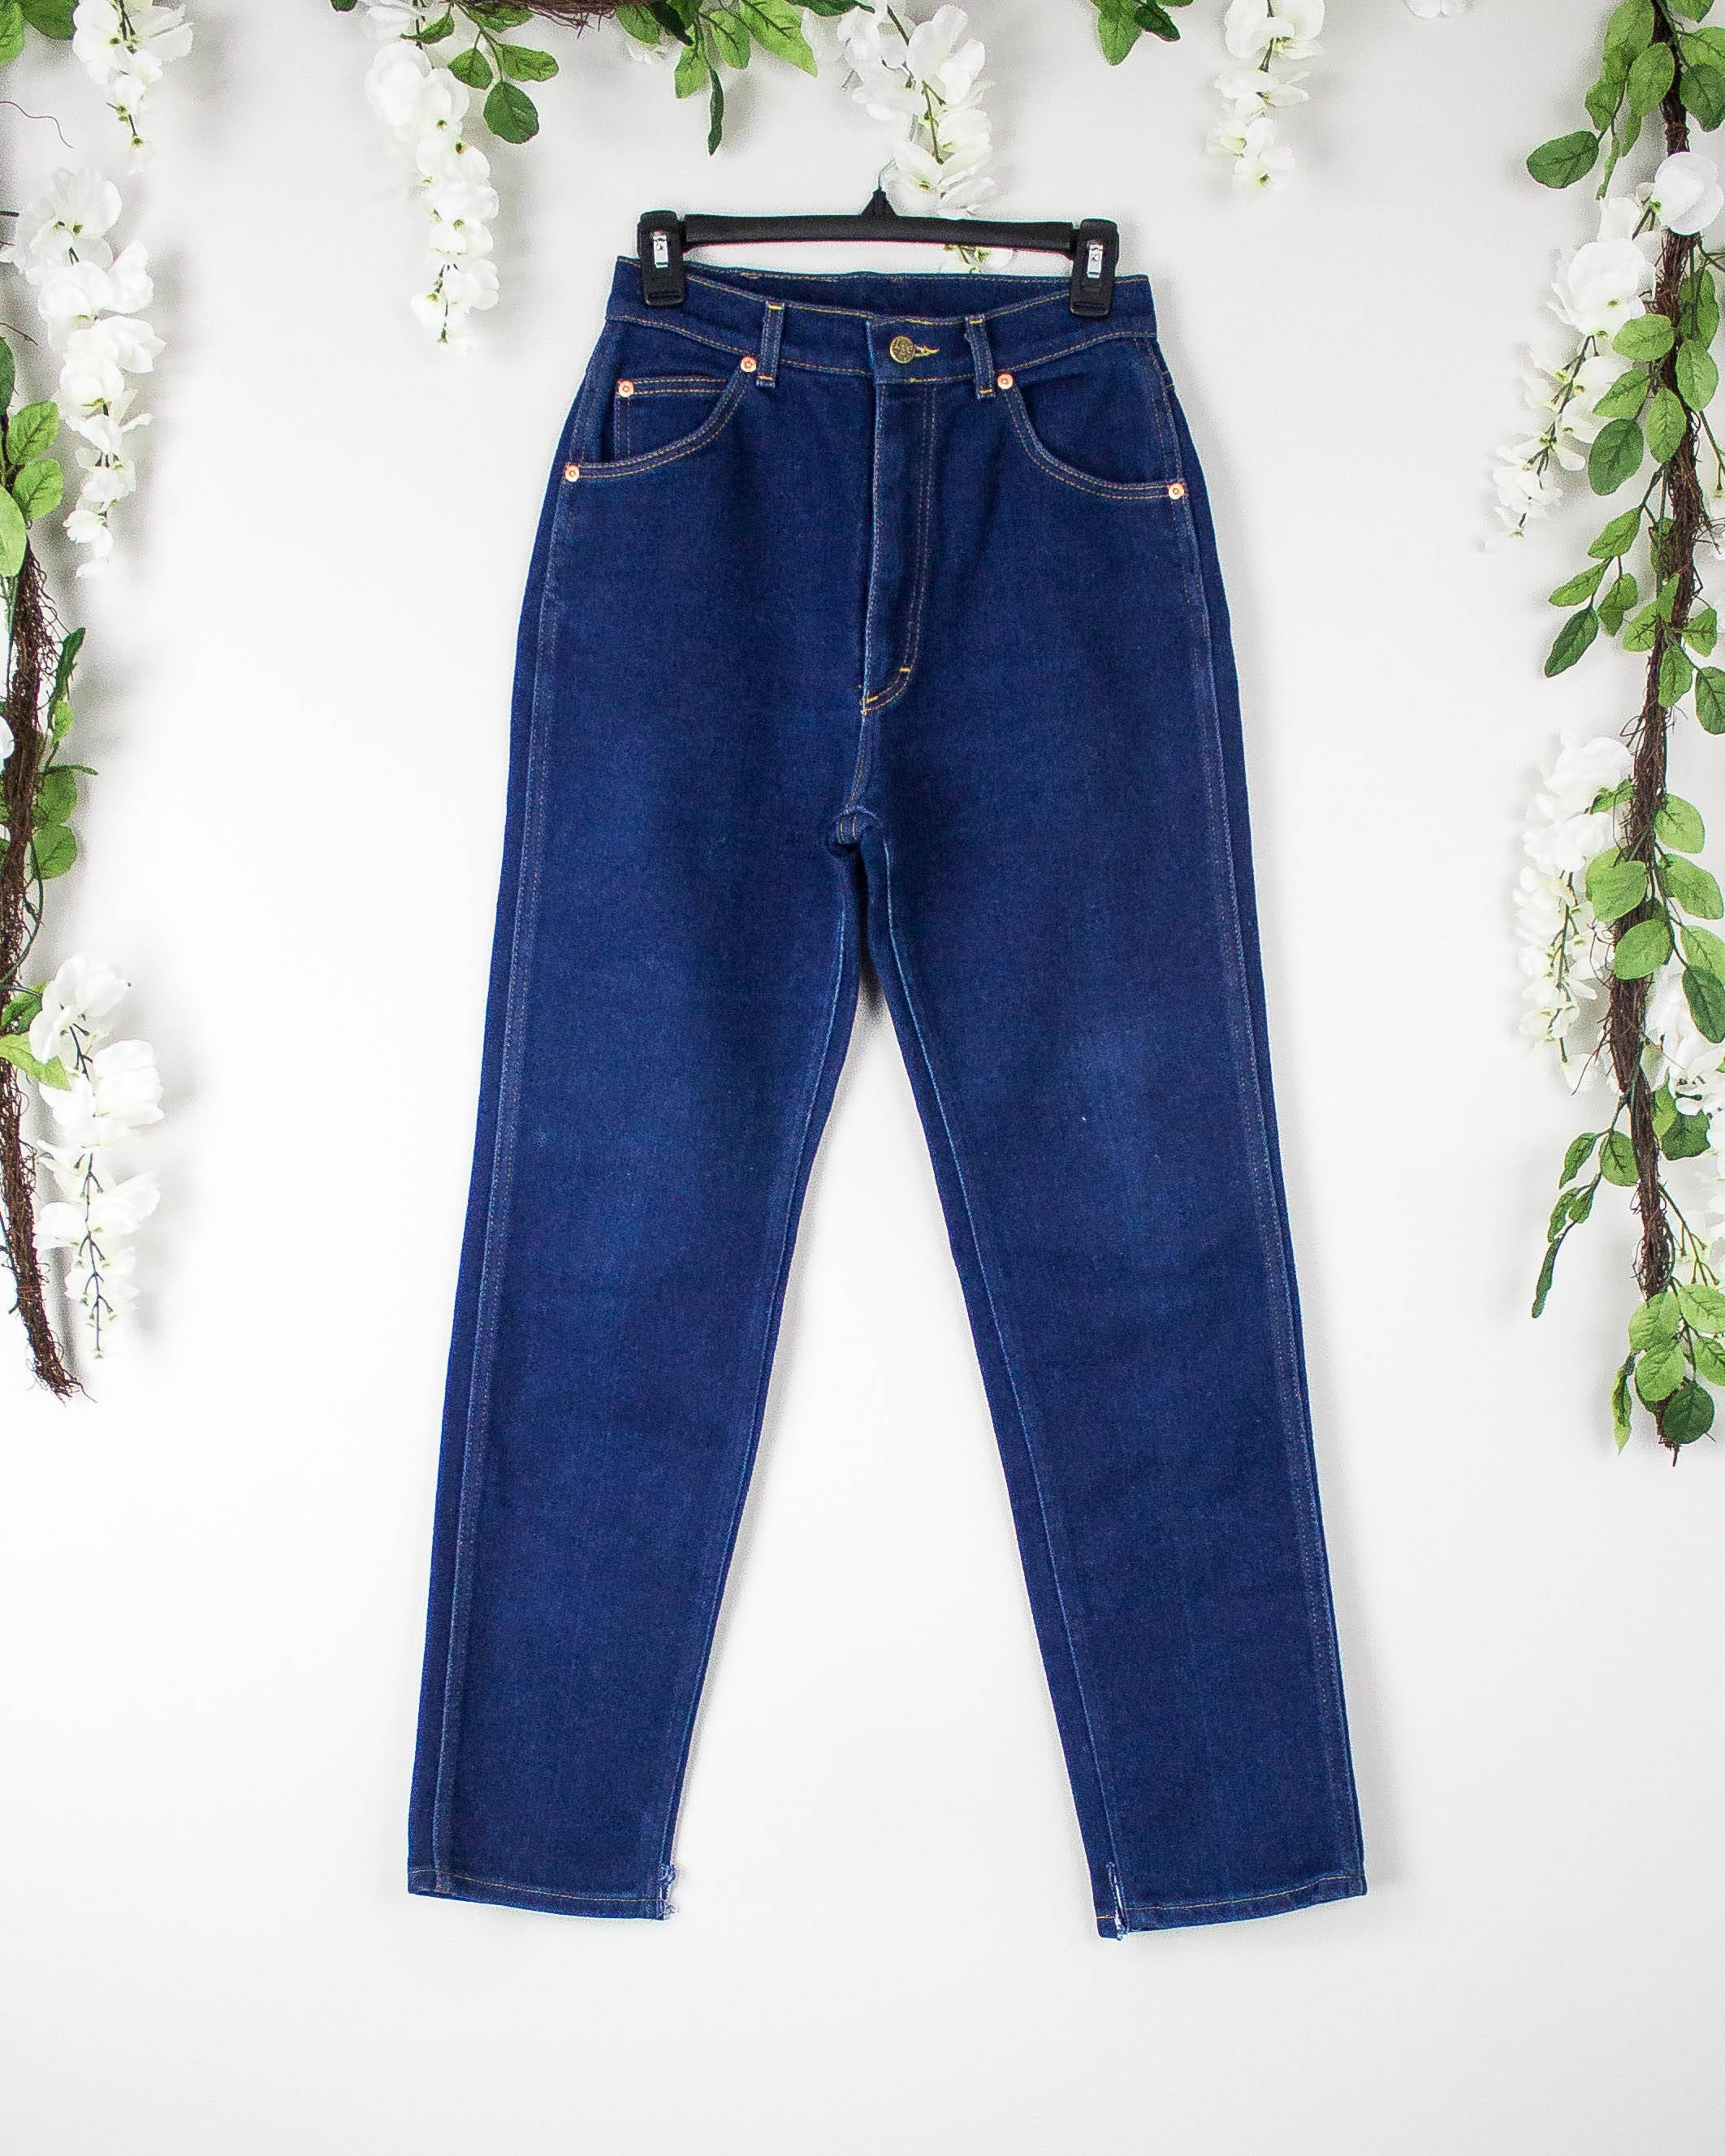 Vintage 26/27 1970s Lee High Waisted Jeans